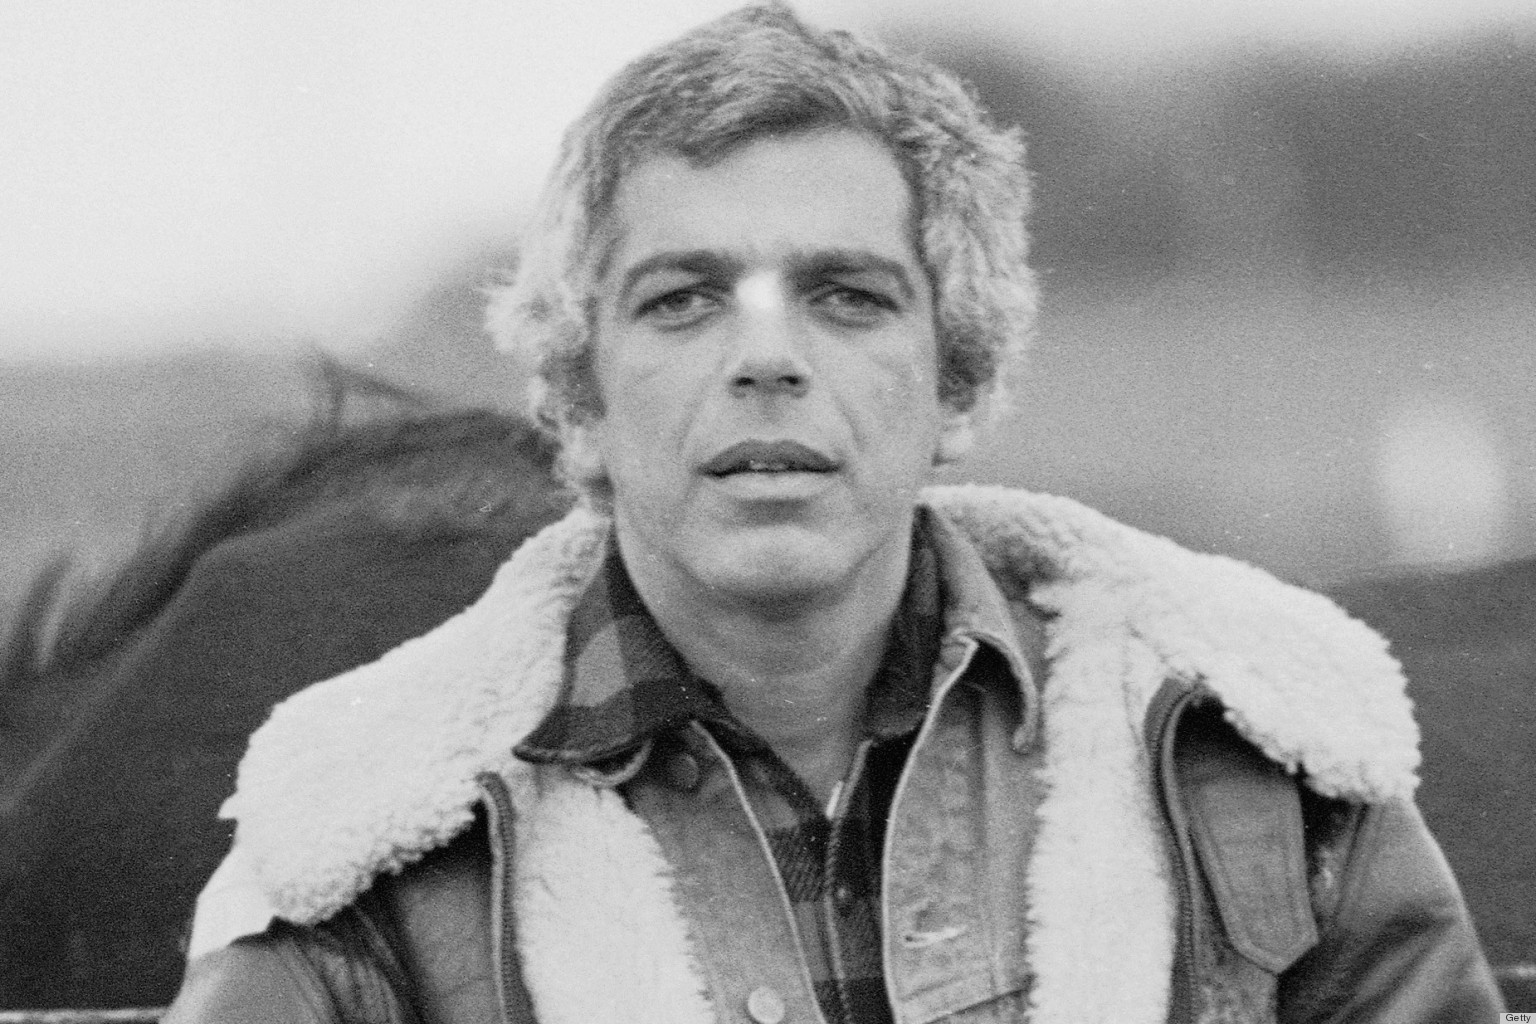 Portrait Of Ralph Lauren With Horses